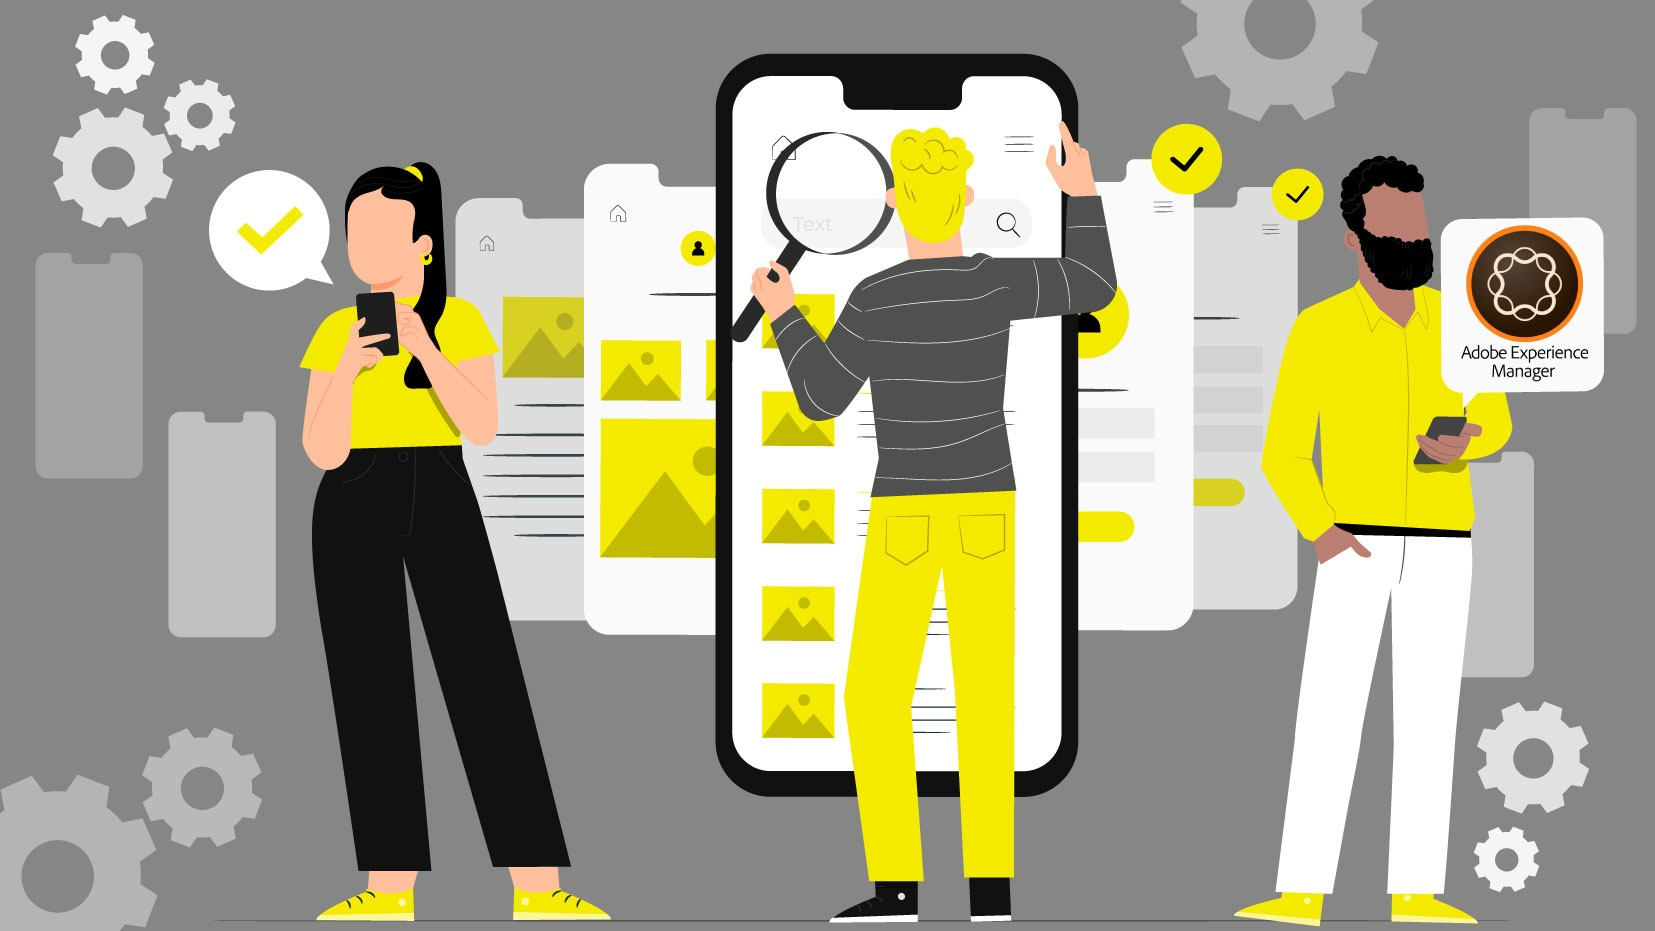 There's an App for That: Adobe Experience Manager's Mobile Feature